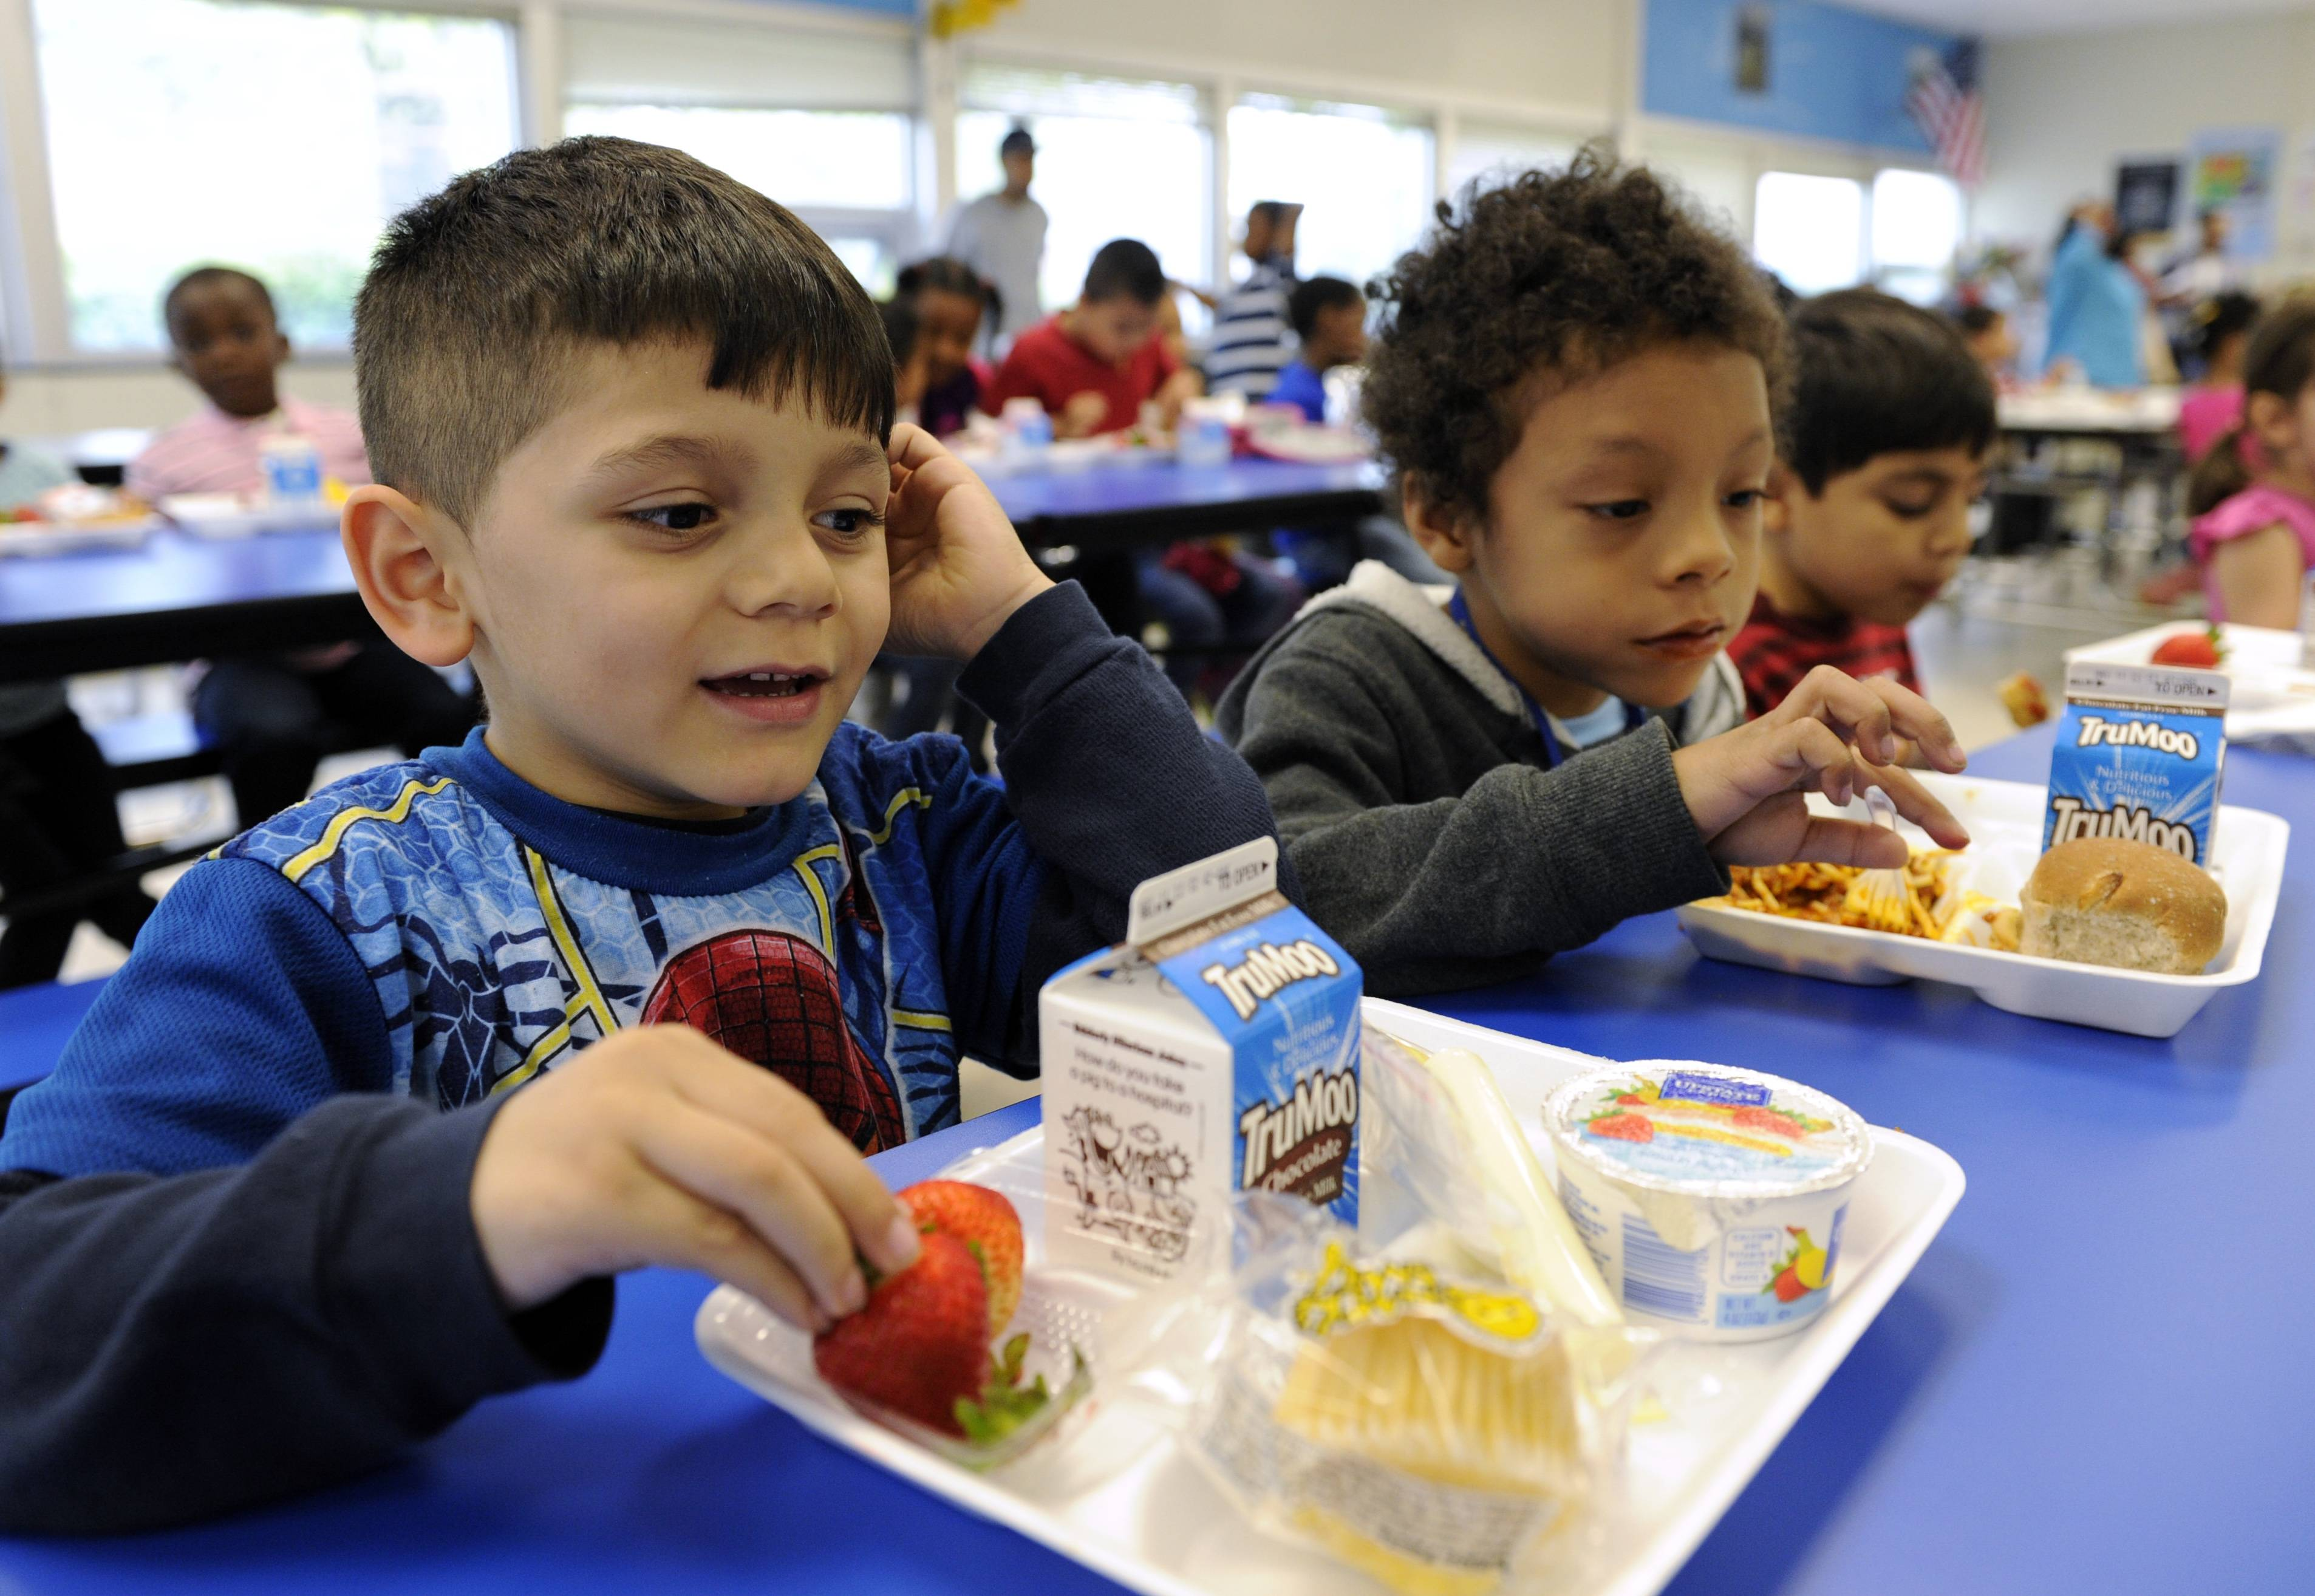 Biden Arias-Romers, 5, left, and Nathaniel Cossio-Boatwright, 6, eat lunch at the Patrick Henry Elementary School in Alexandria, Va. Starting next school year, pasta and other grain products in schools will have to be whole-grain rich, or more than half whole grain. The requirement is part of a government effort to make school lunches and breakfasts healthier.